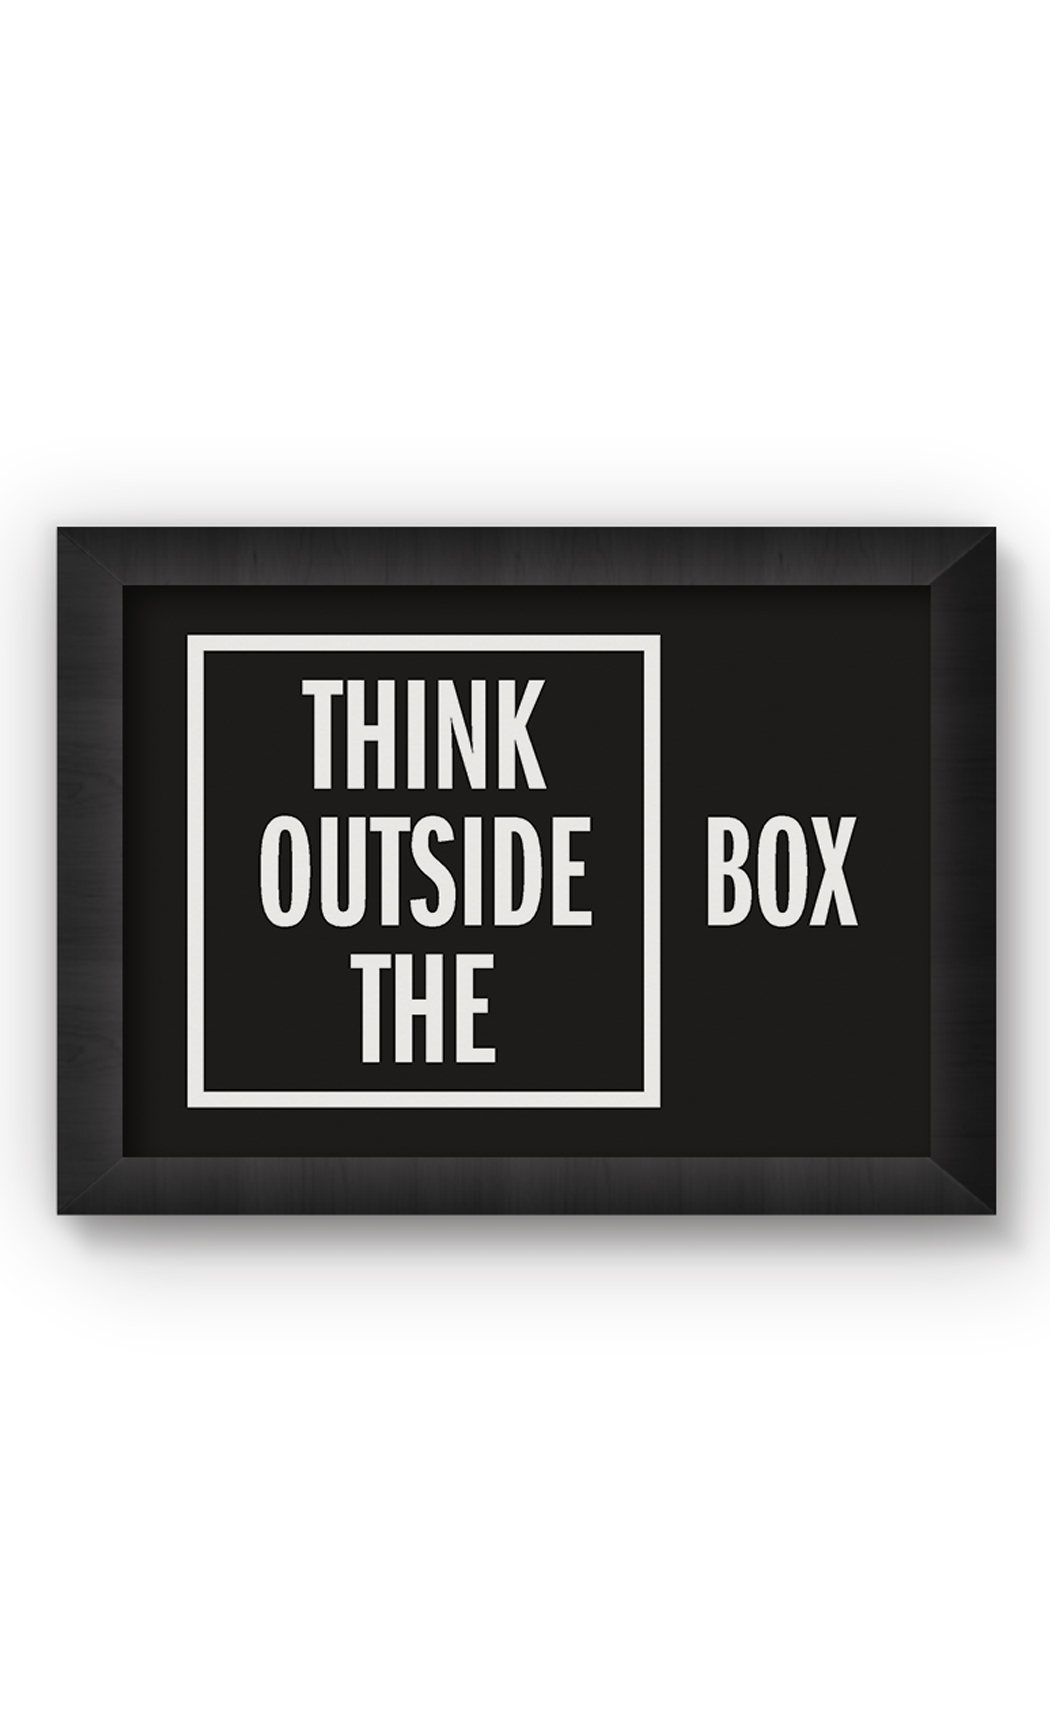 Black & White THINK OUTSIDE THE BOX Poster. Buy Online.